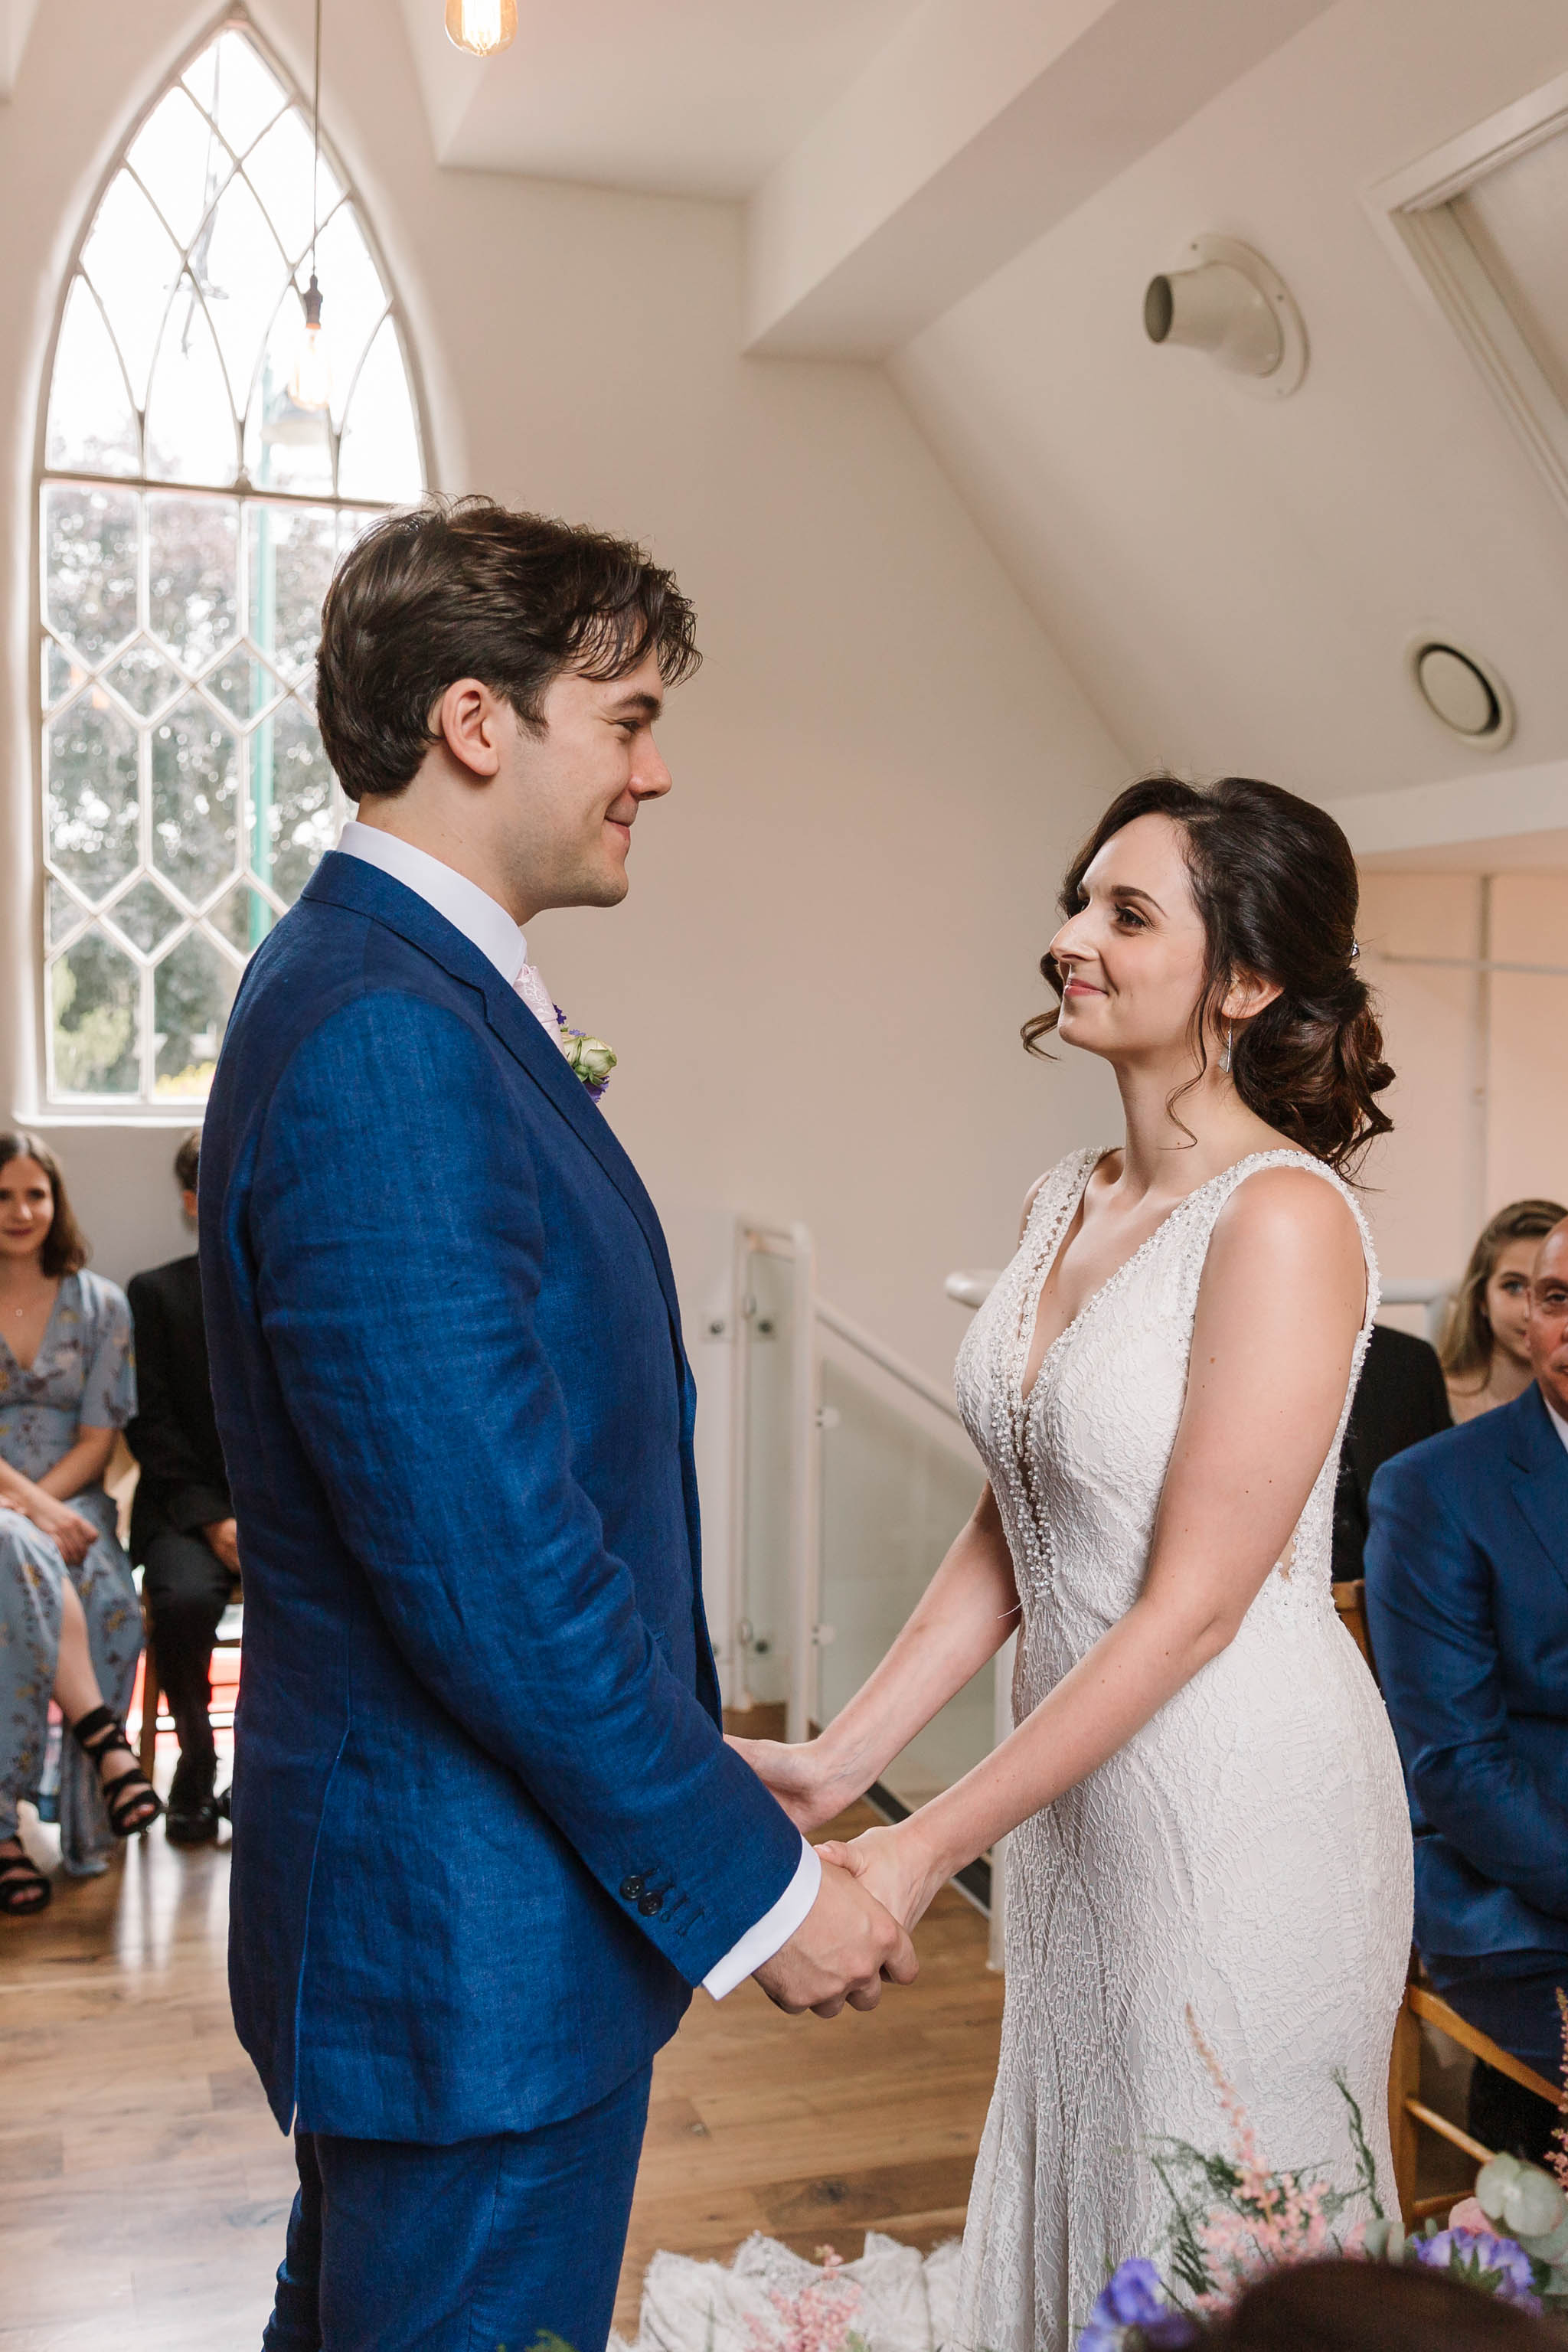 bride and groom excited during wedding ceremony - old parish rooms wedding